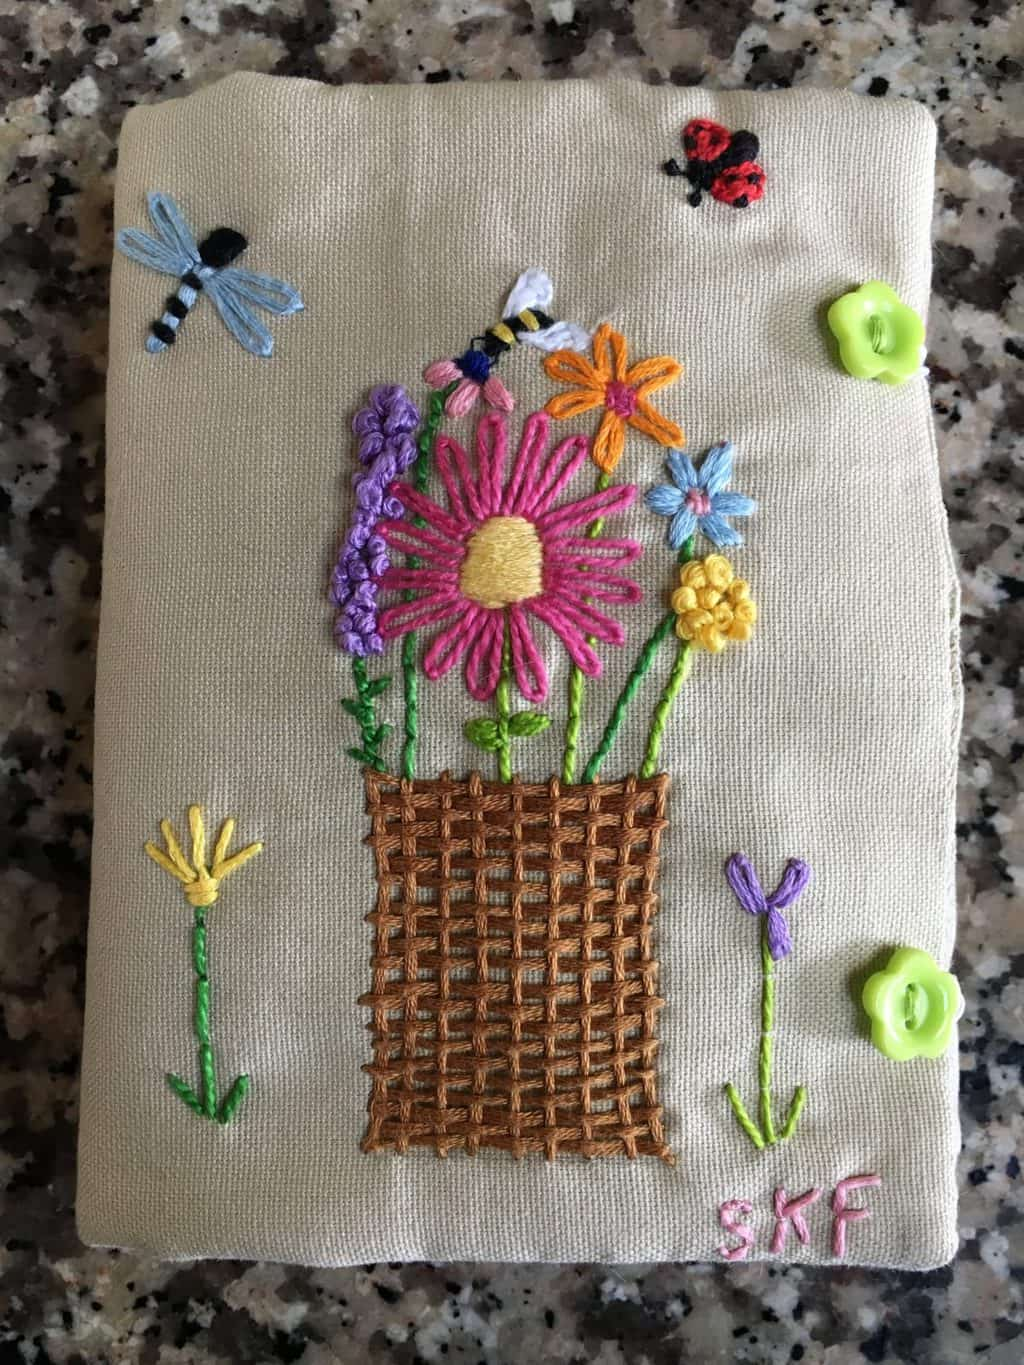 How to Make a Needle Book with an Embroidered Cover